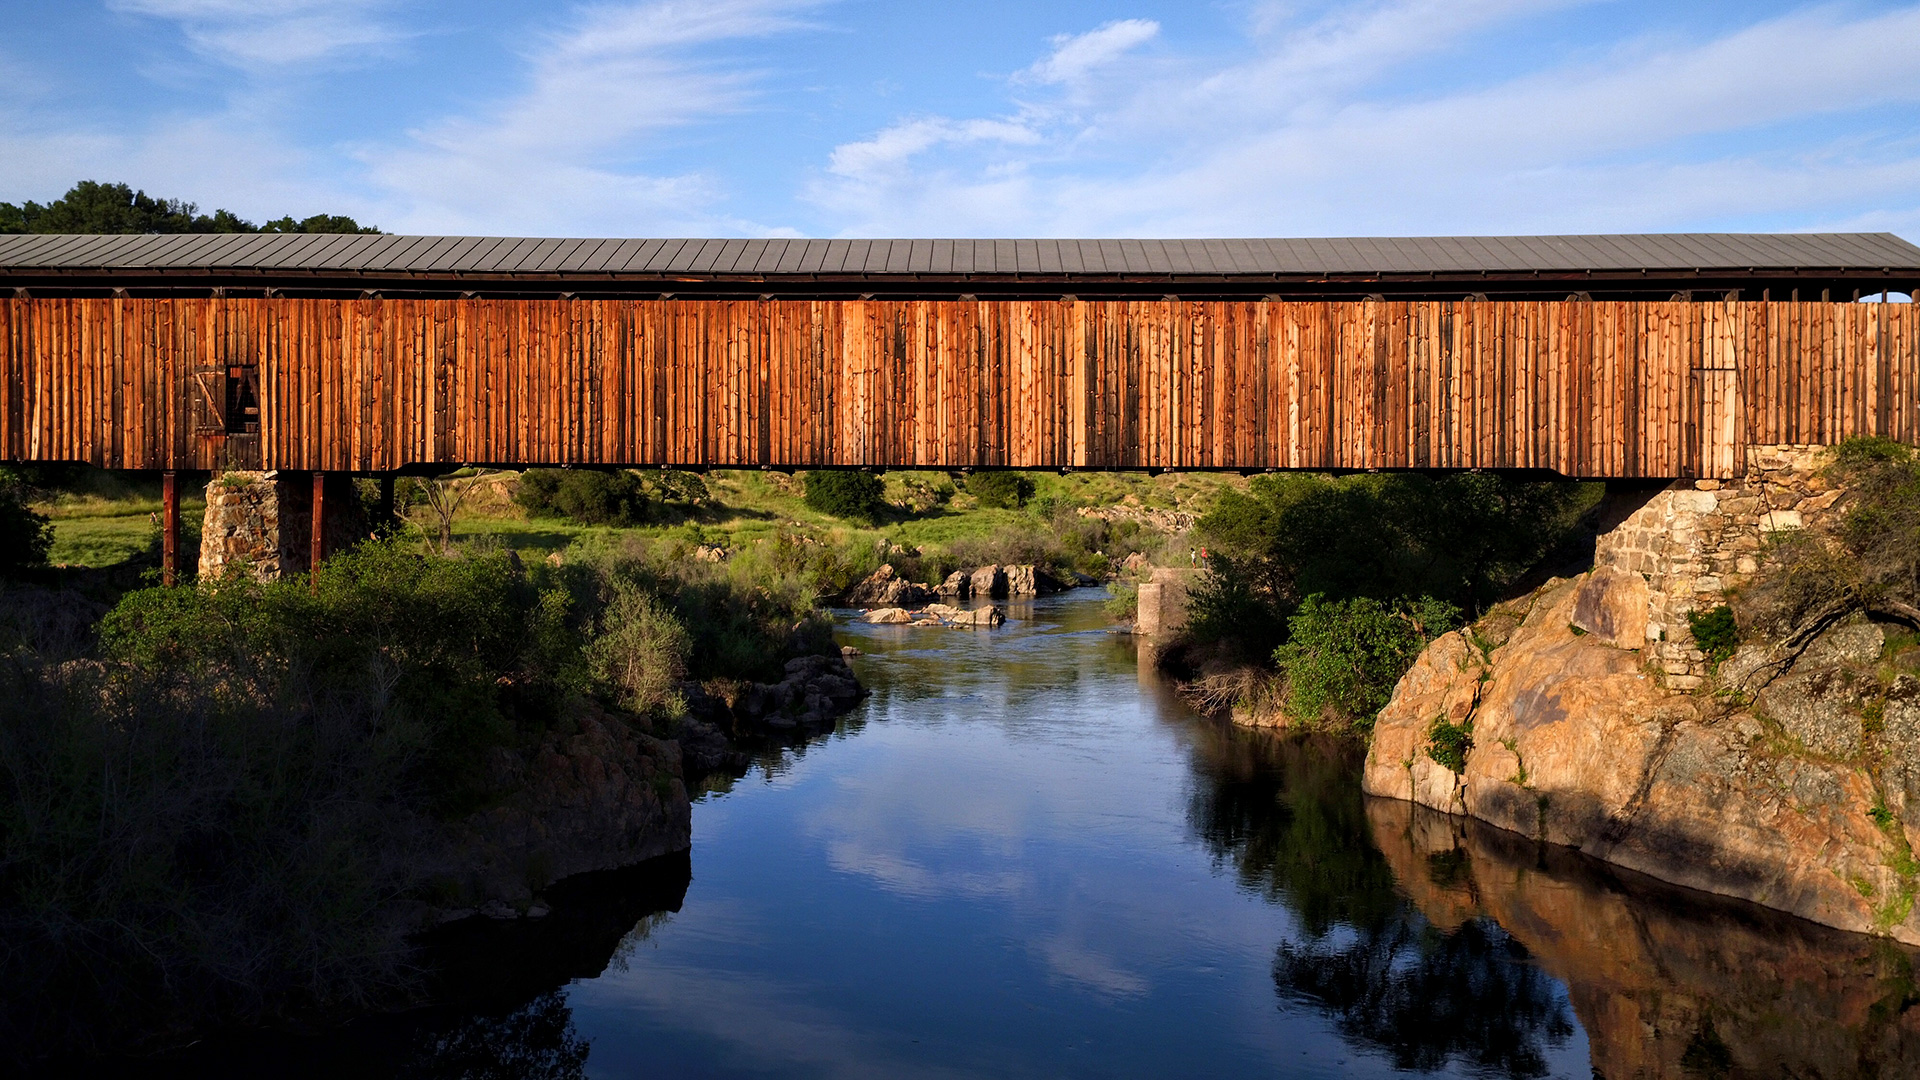 Landscape Covered Bridge - Knights Ferry, CA